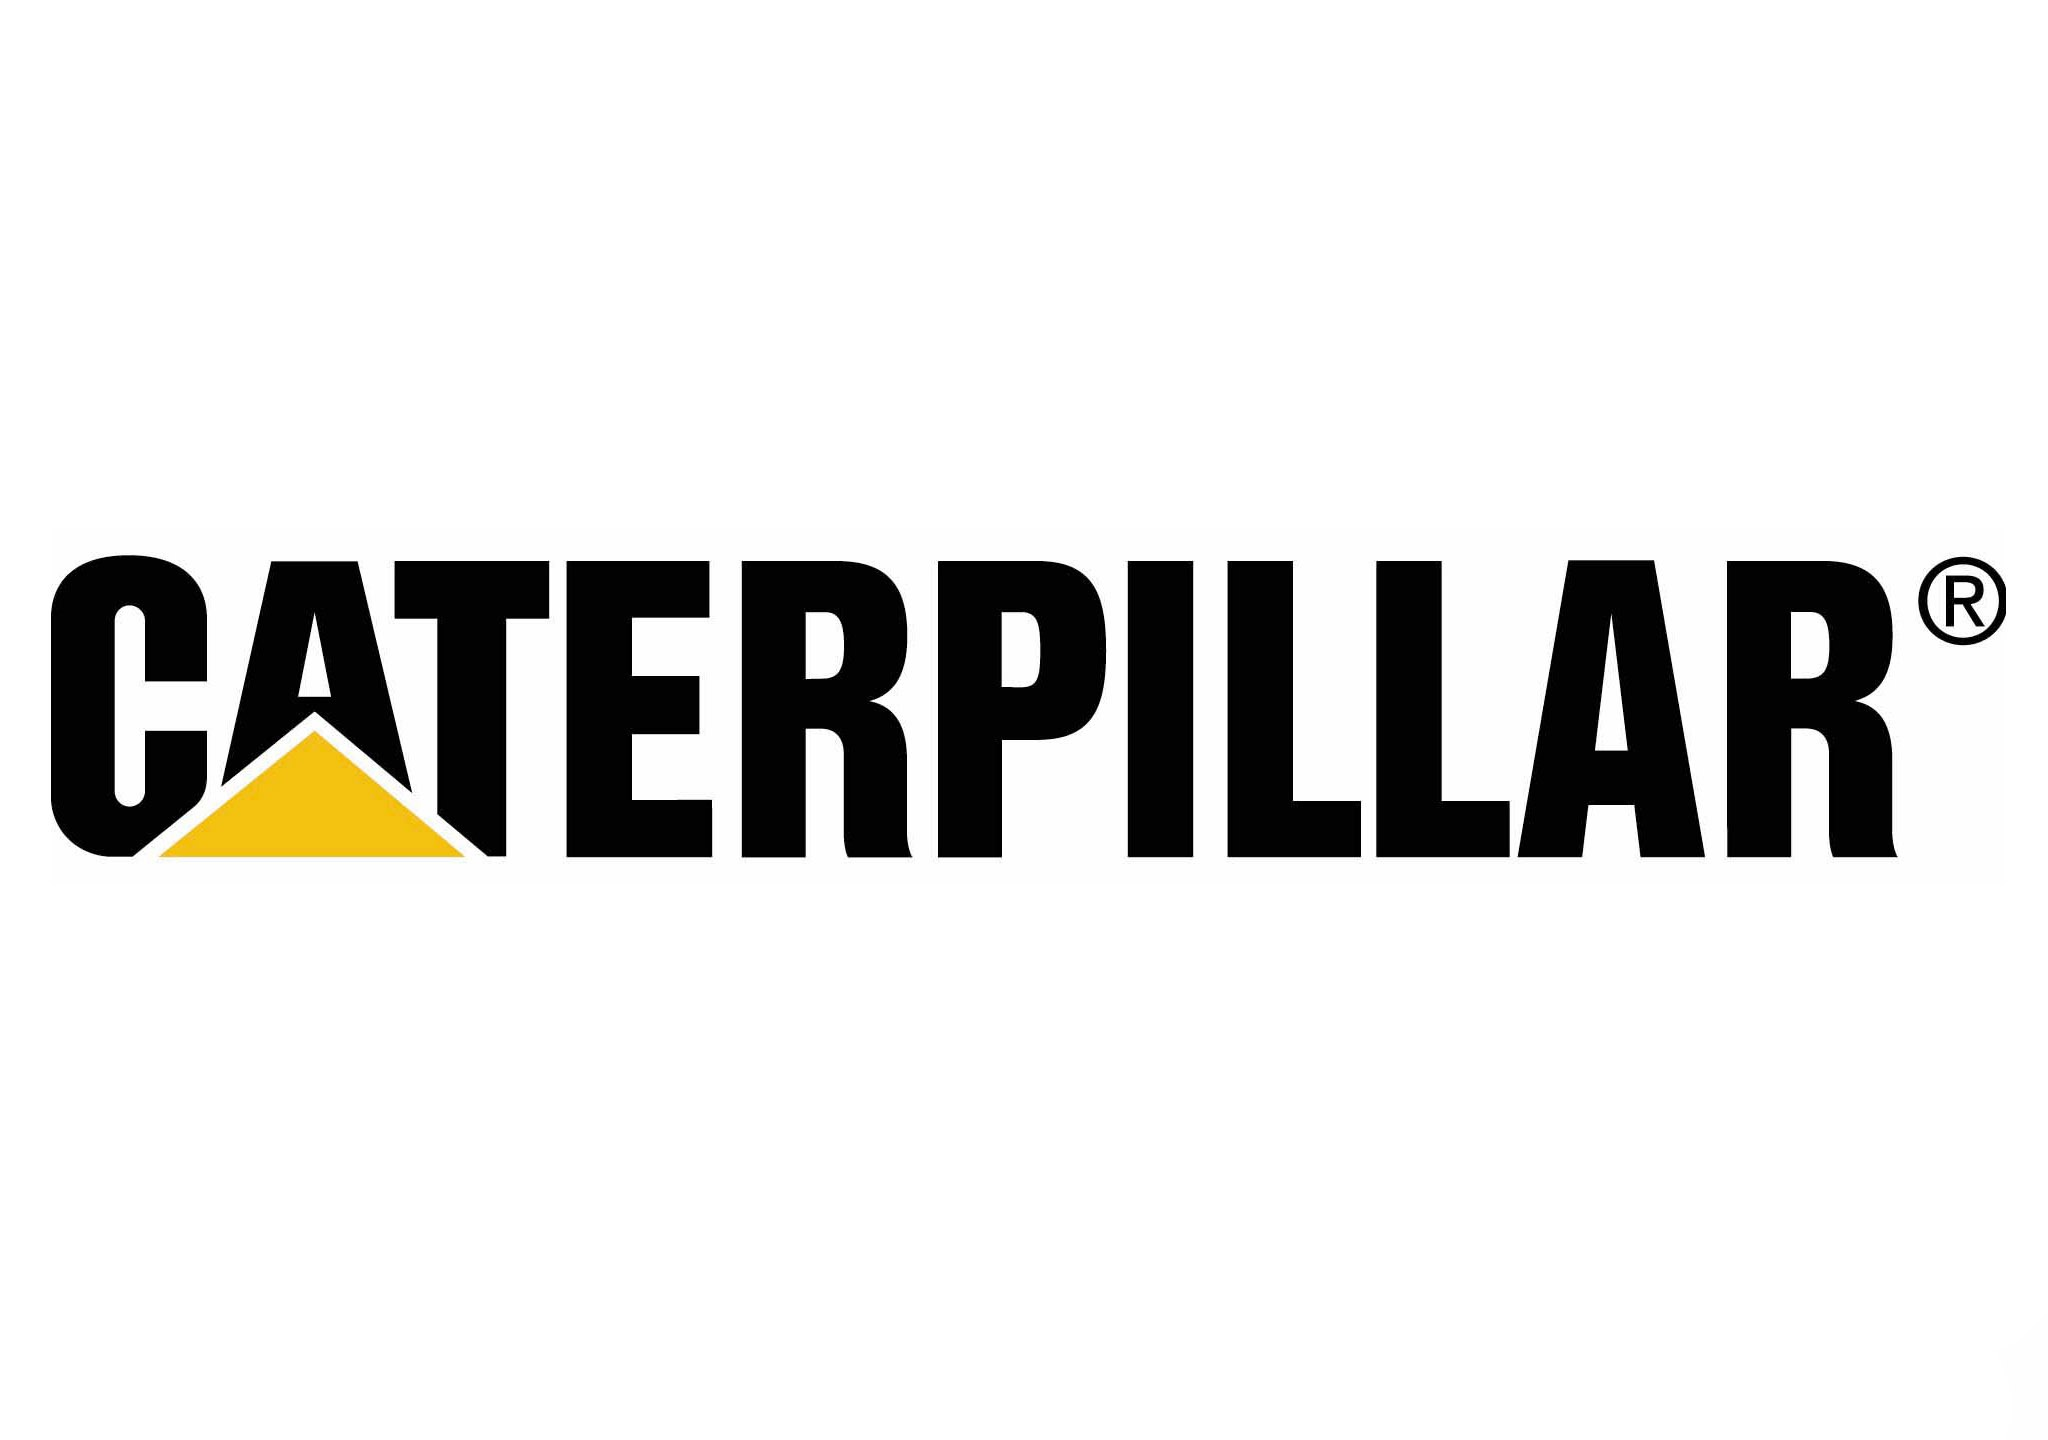 Caterpillar logo_1443139112747.jpg